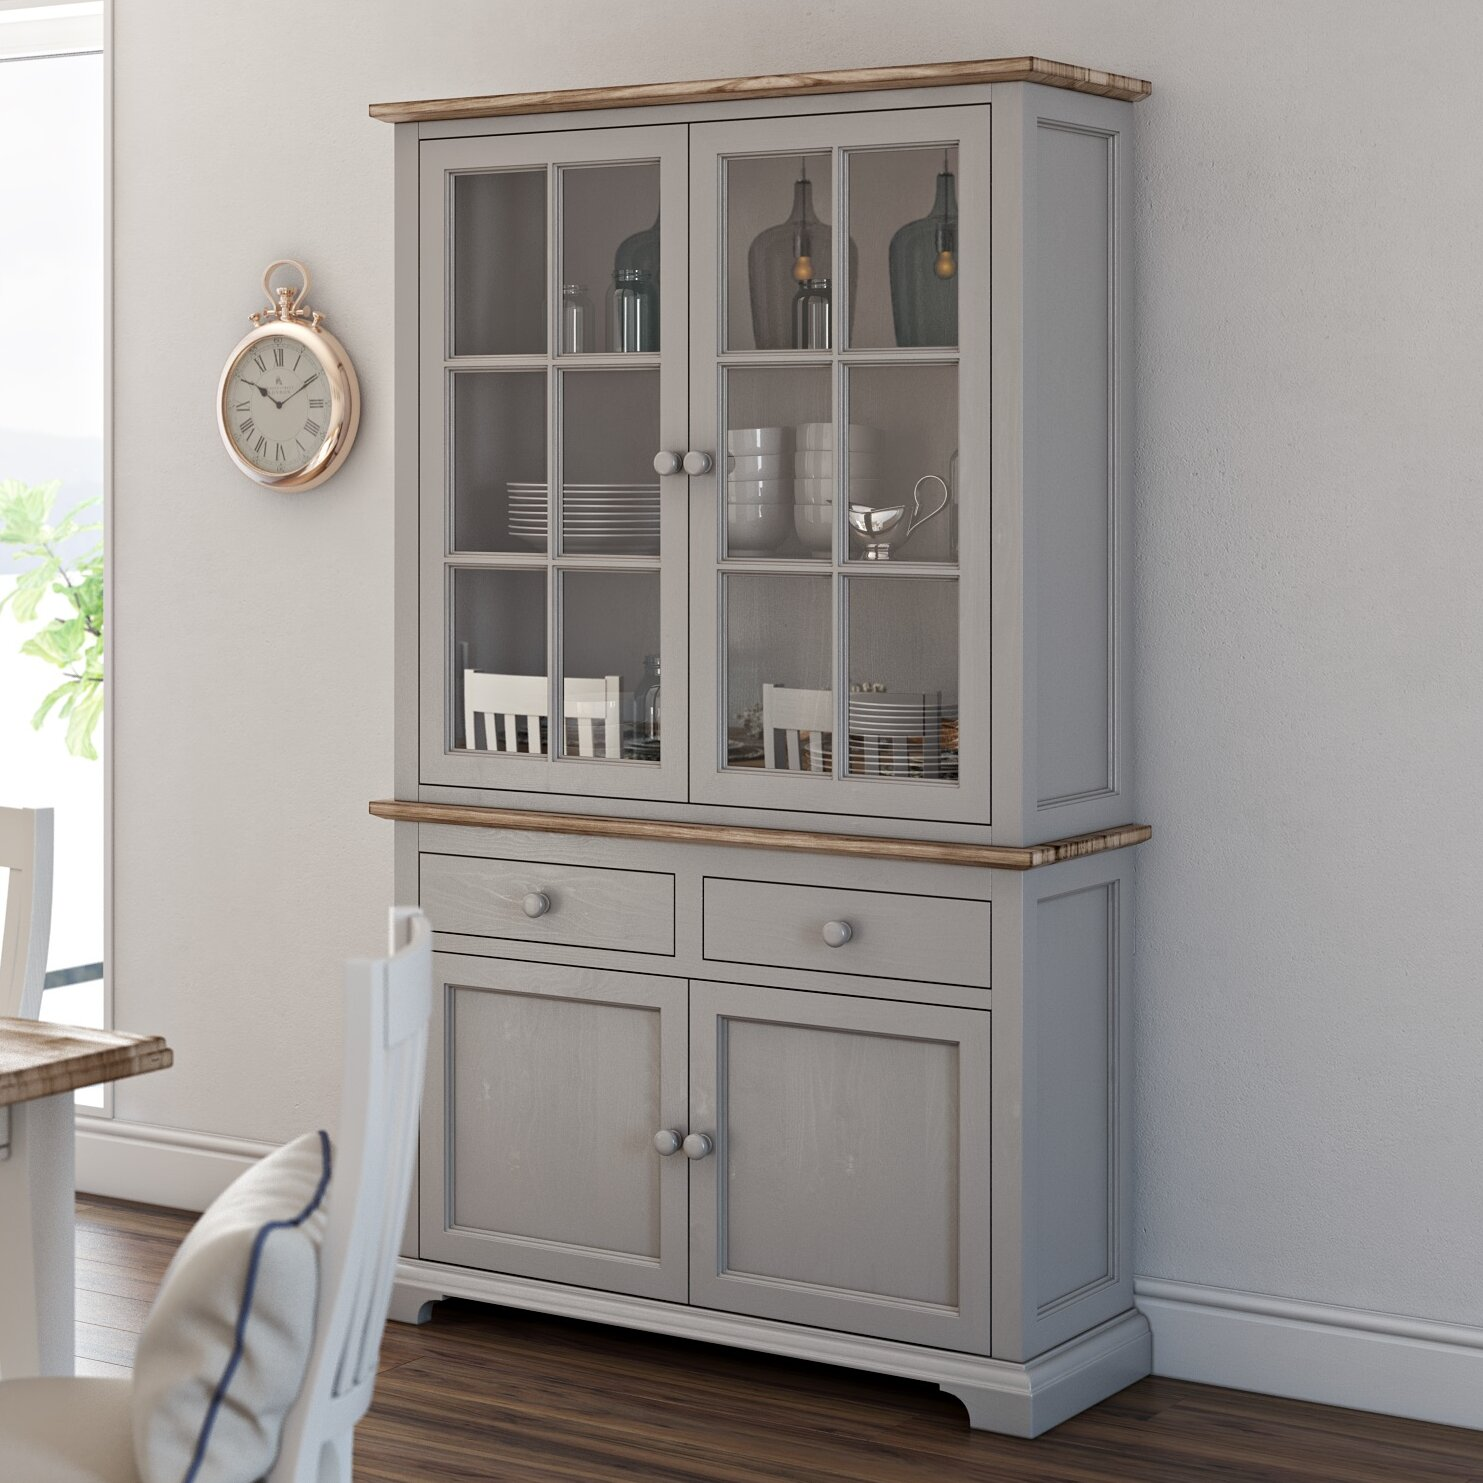 Display Kitchen Cabinets For Sale: Breakwater Bay Chatham Display Cabinet & Reviews